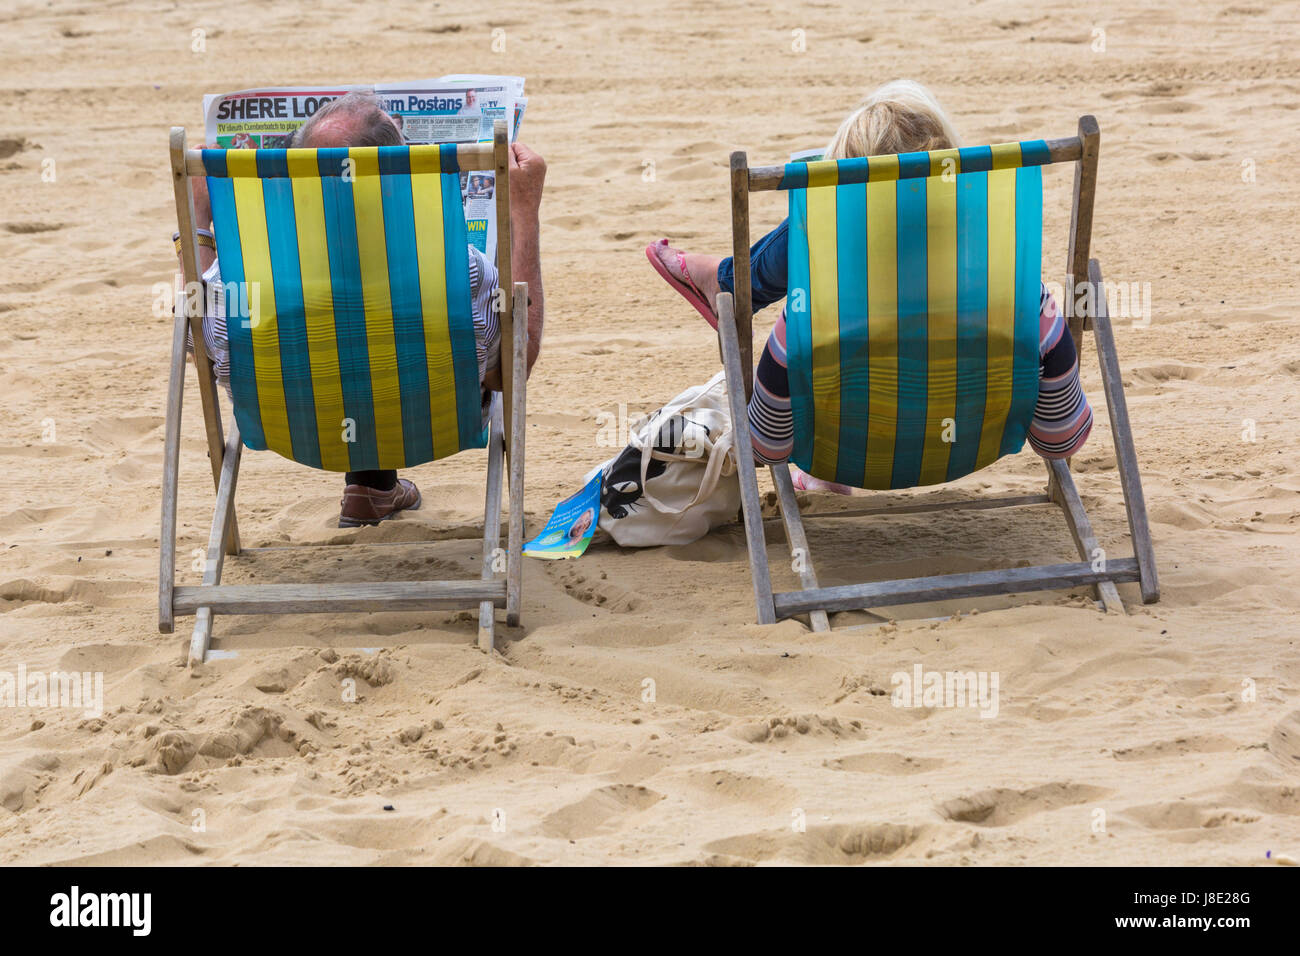 Bournemouth, Dorset, UK. 28th May, 2017. UK weather: overcast day at Bournemouth beaches, but the sun is trying to break through. Visitors head to the seaside to make the most of the Bank Holiday weekend. Couple in deckchairs on Bournemouth beach.  Credit: Carolyn Jenkins/Alamy Live News Stock Photo